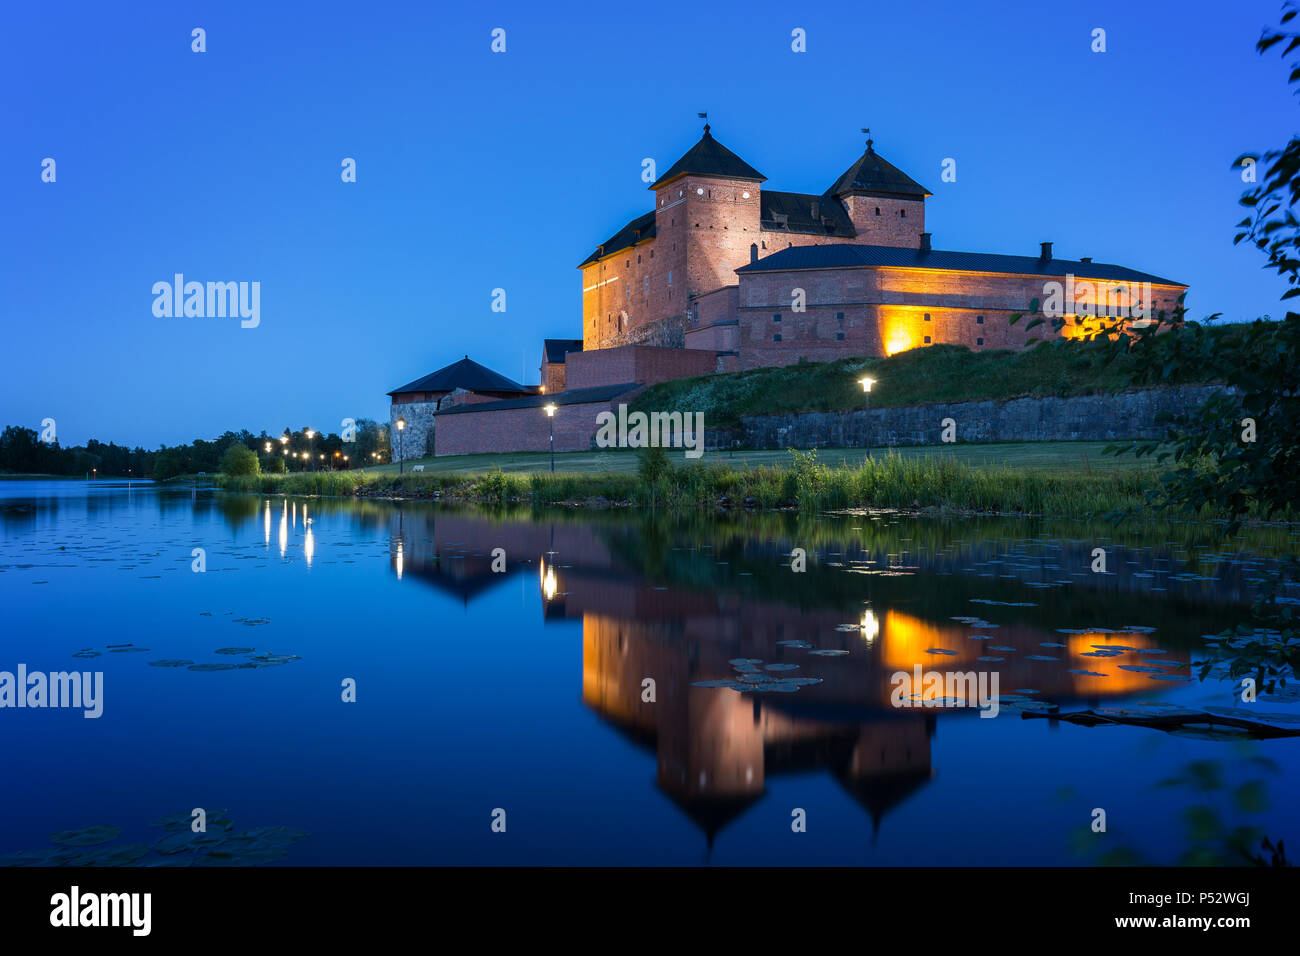 Beautiful view of lit 13th century Häme Castle and its reflections on lake Vanajavesi in Hämeenlinna, Finland, at night. Stock Photo